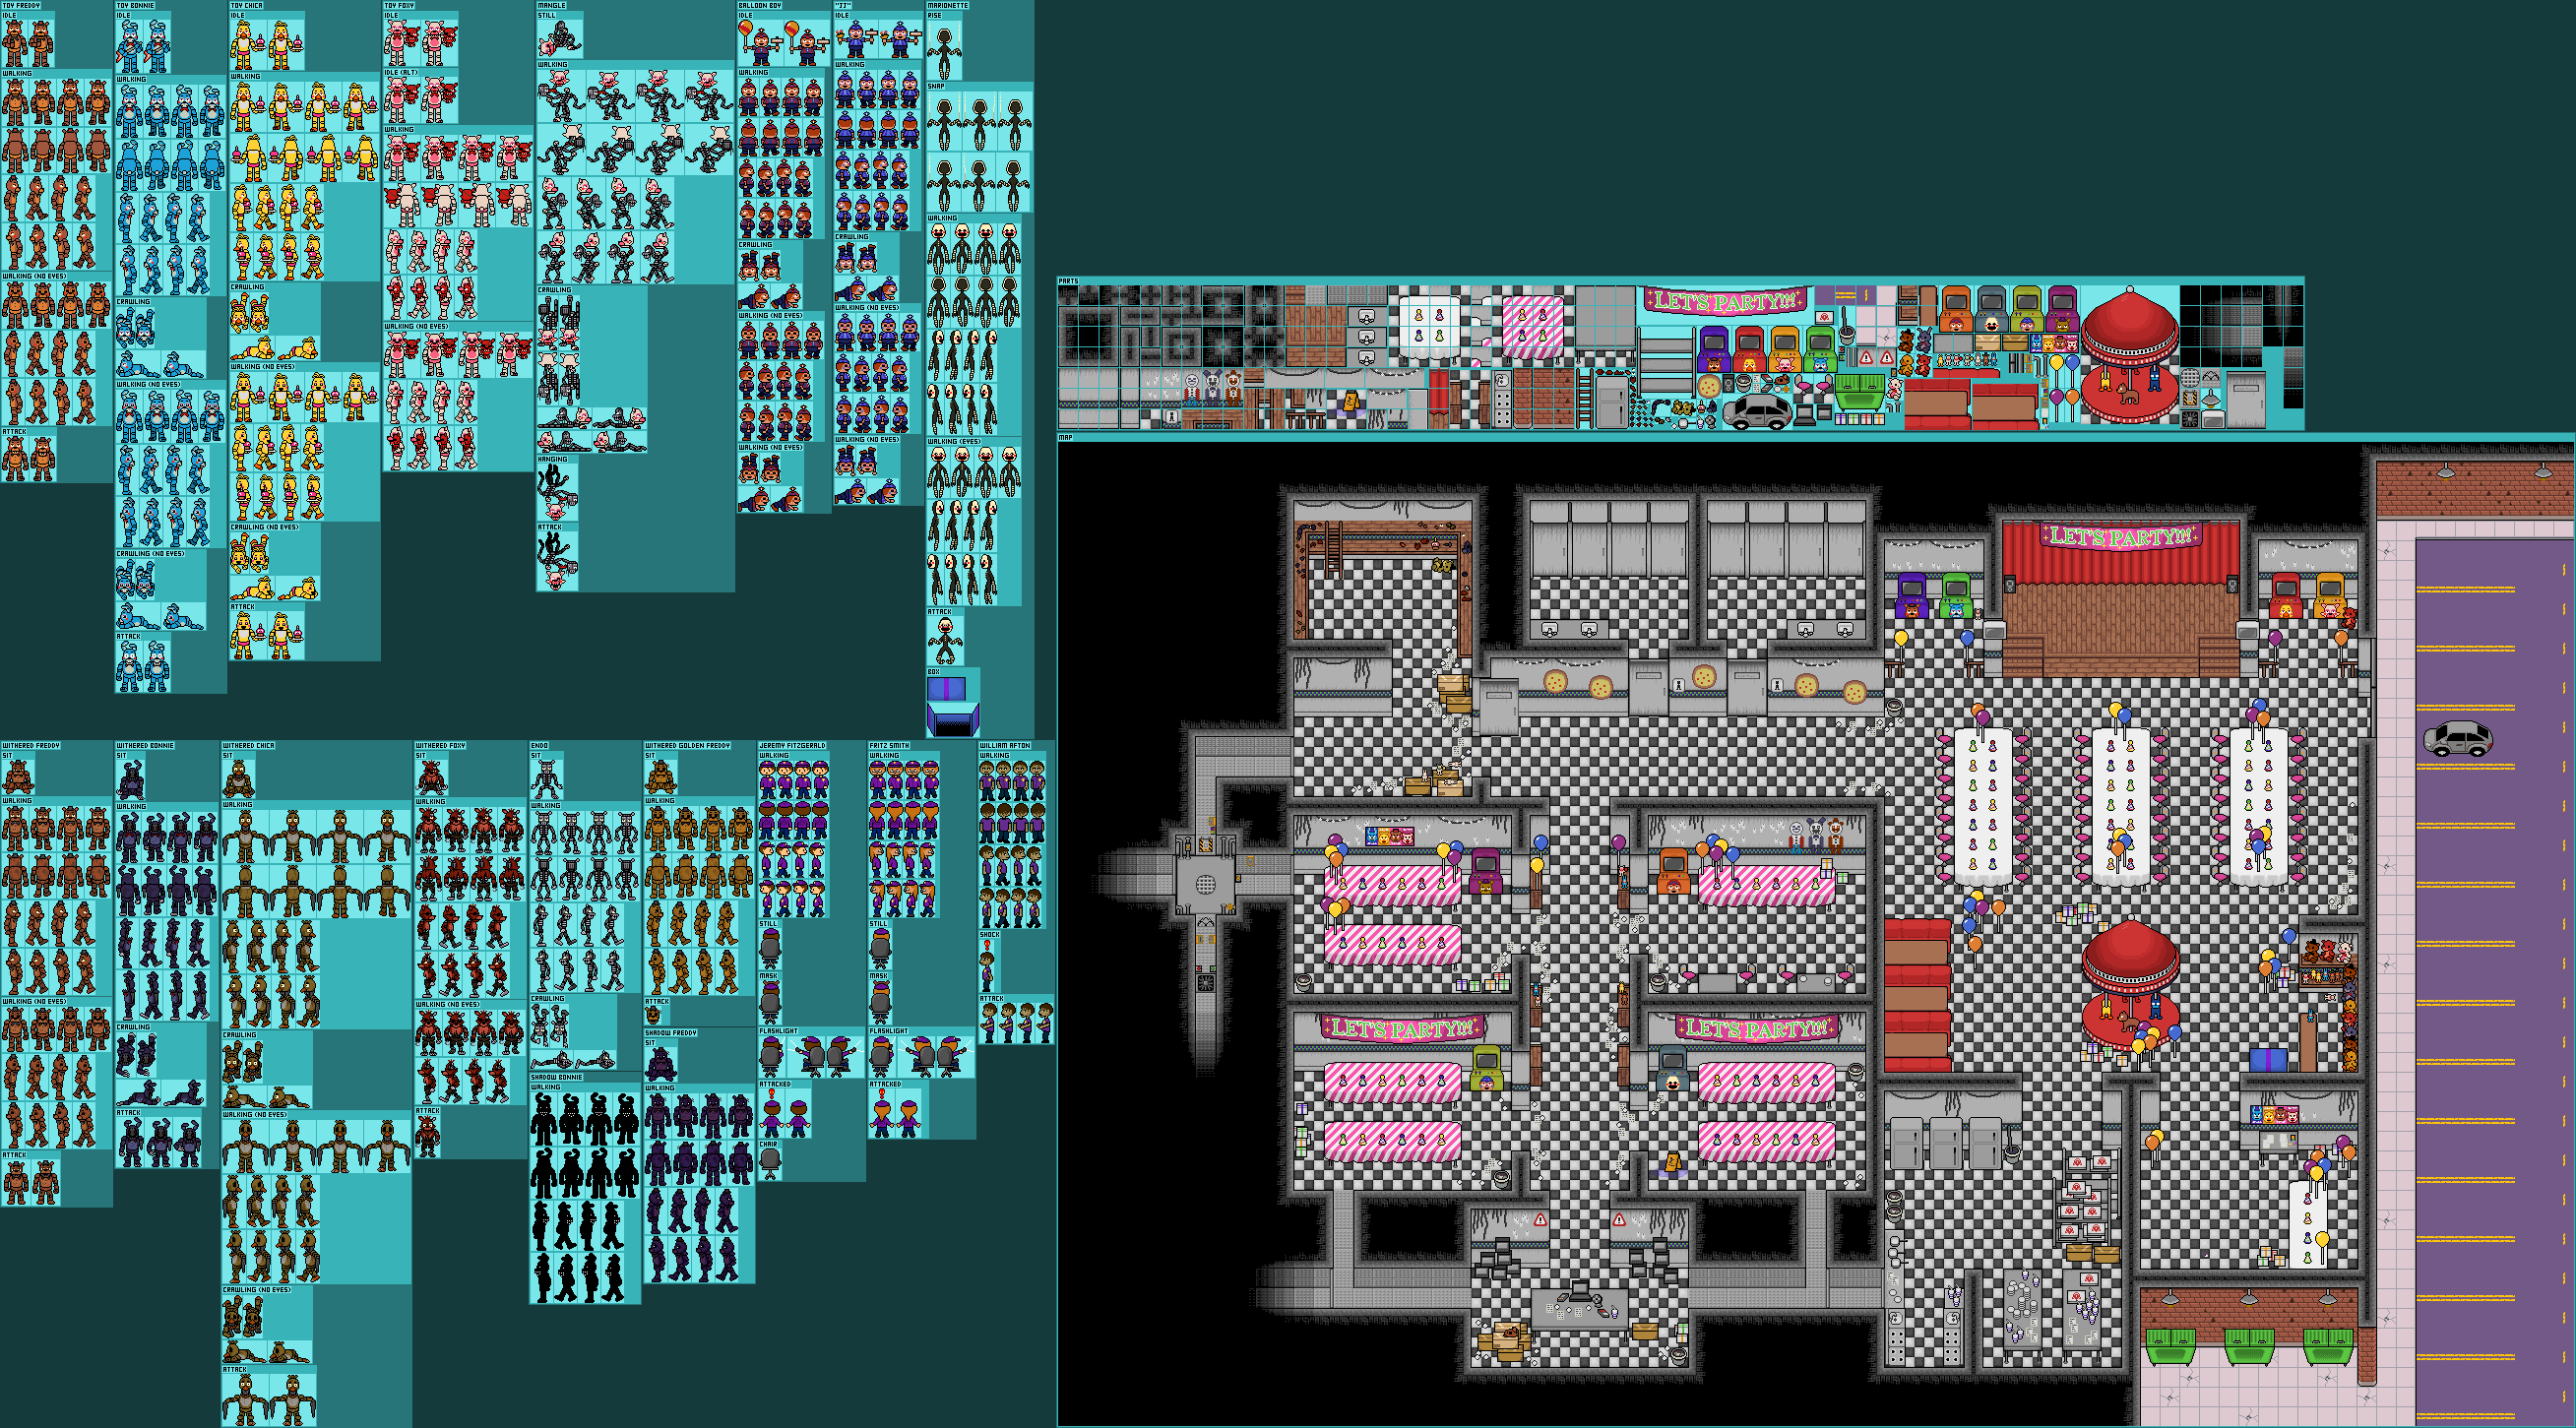 FNaF 2 Map / Characters (Undertale Overworld-Style)